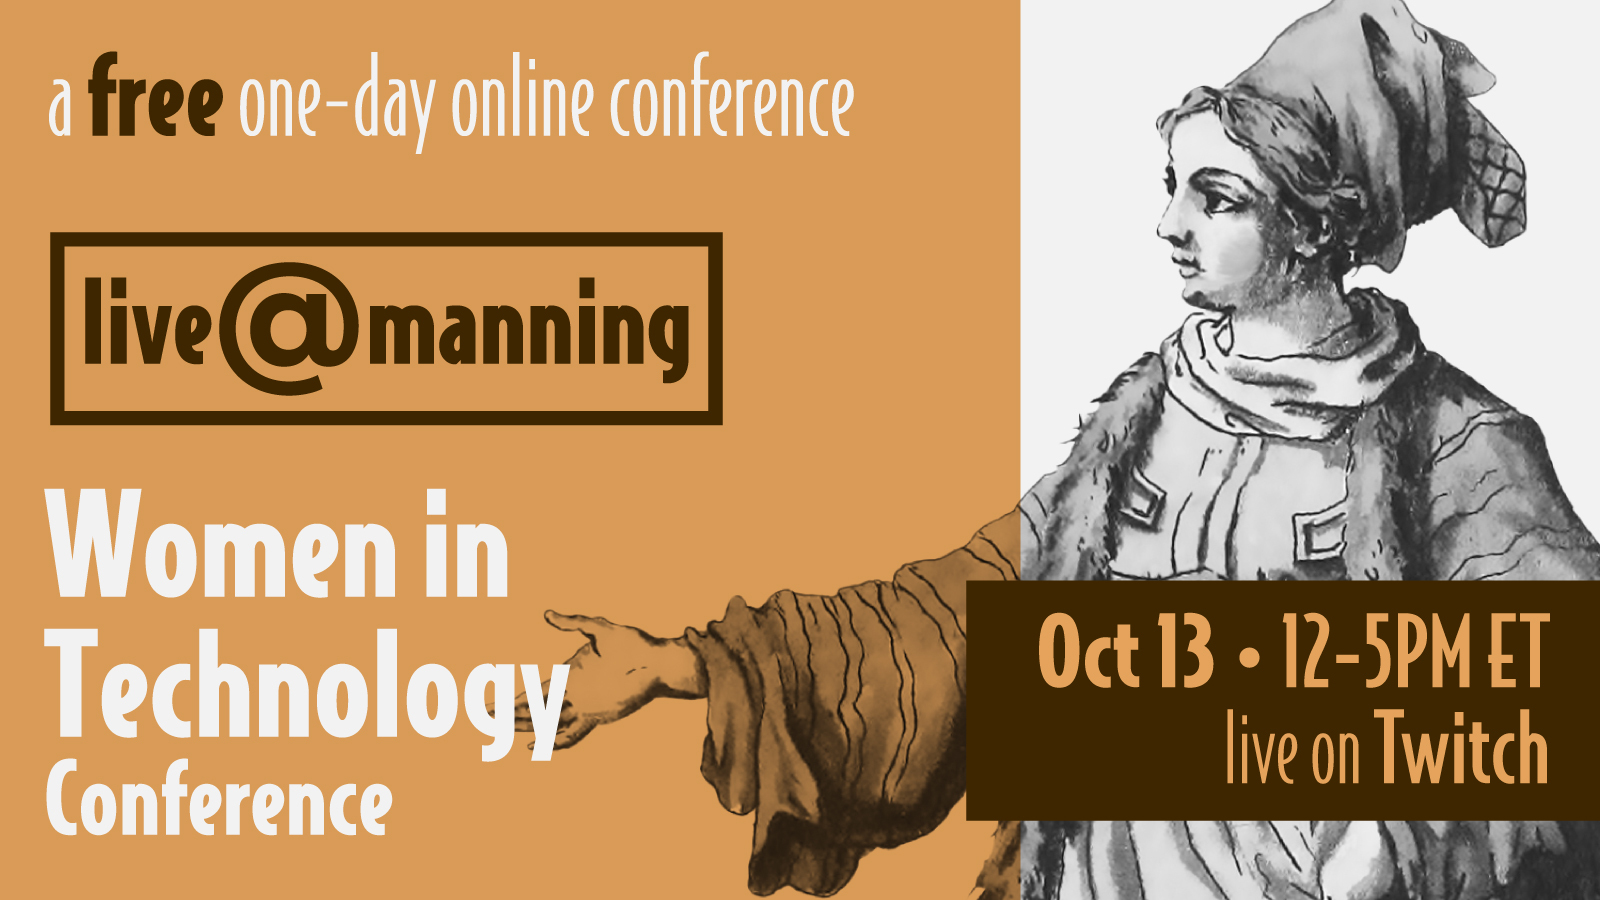 live@manning Women in Technology